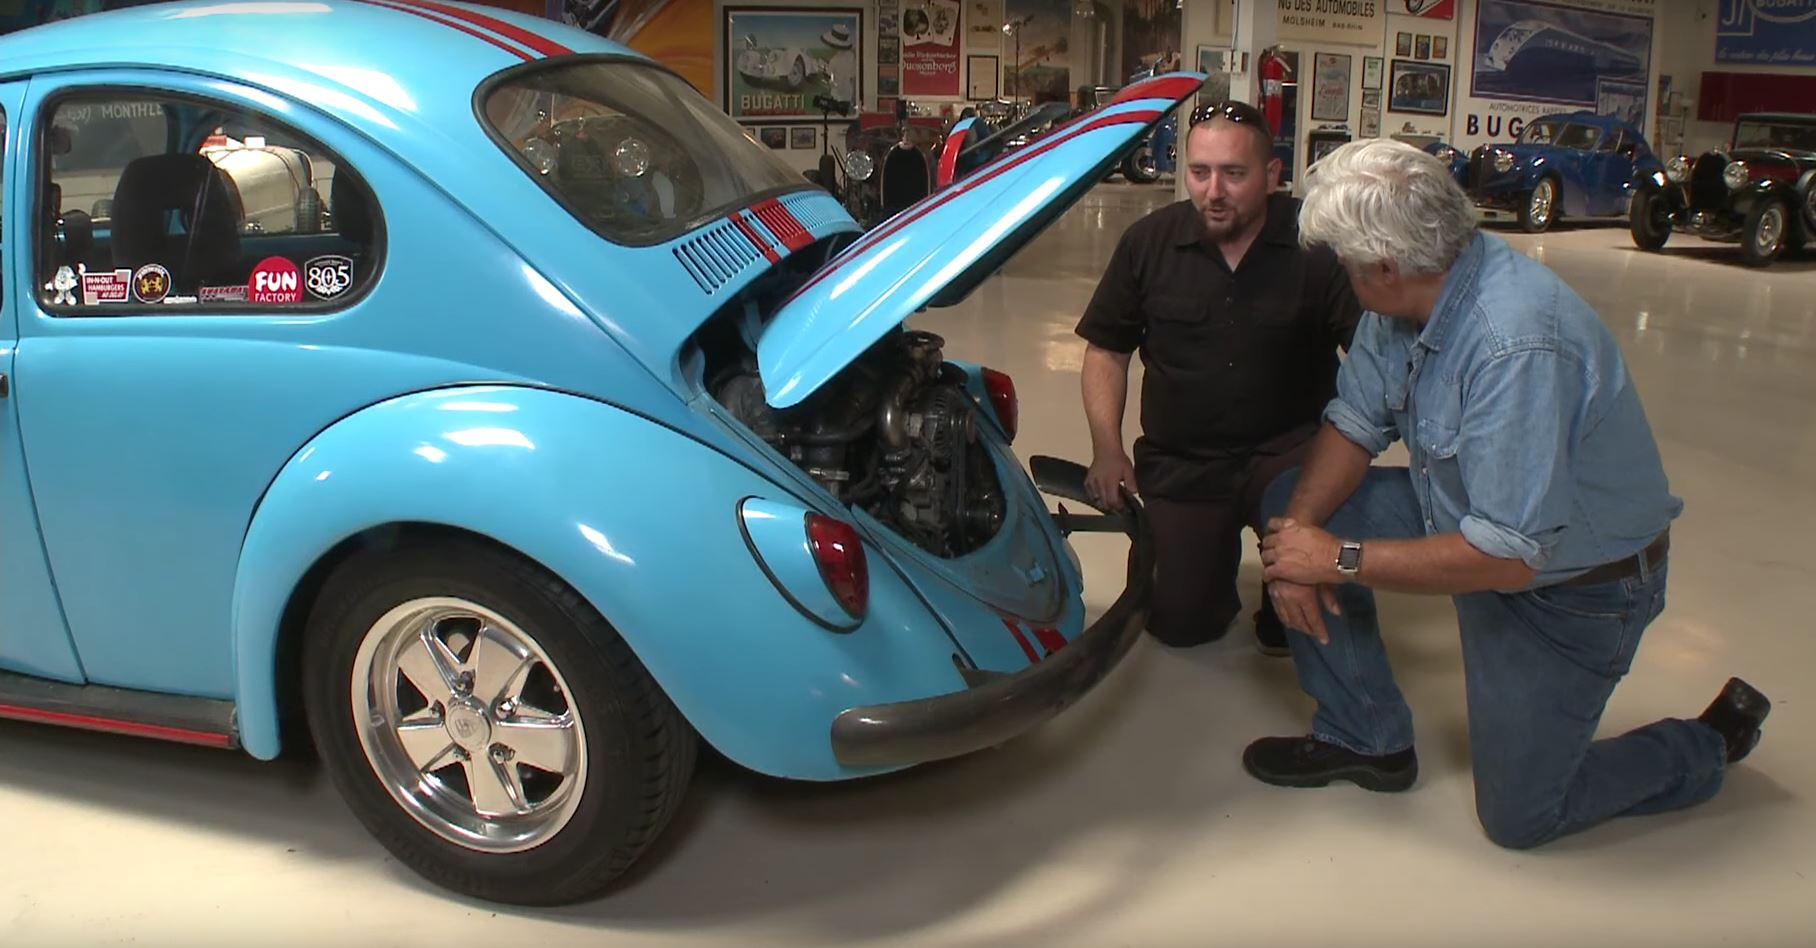 Jay Leno Checks Out Vw Beetle With Rx 7 Rotary Engine